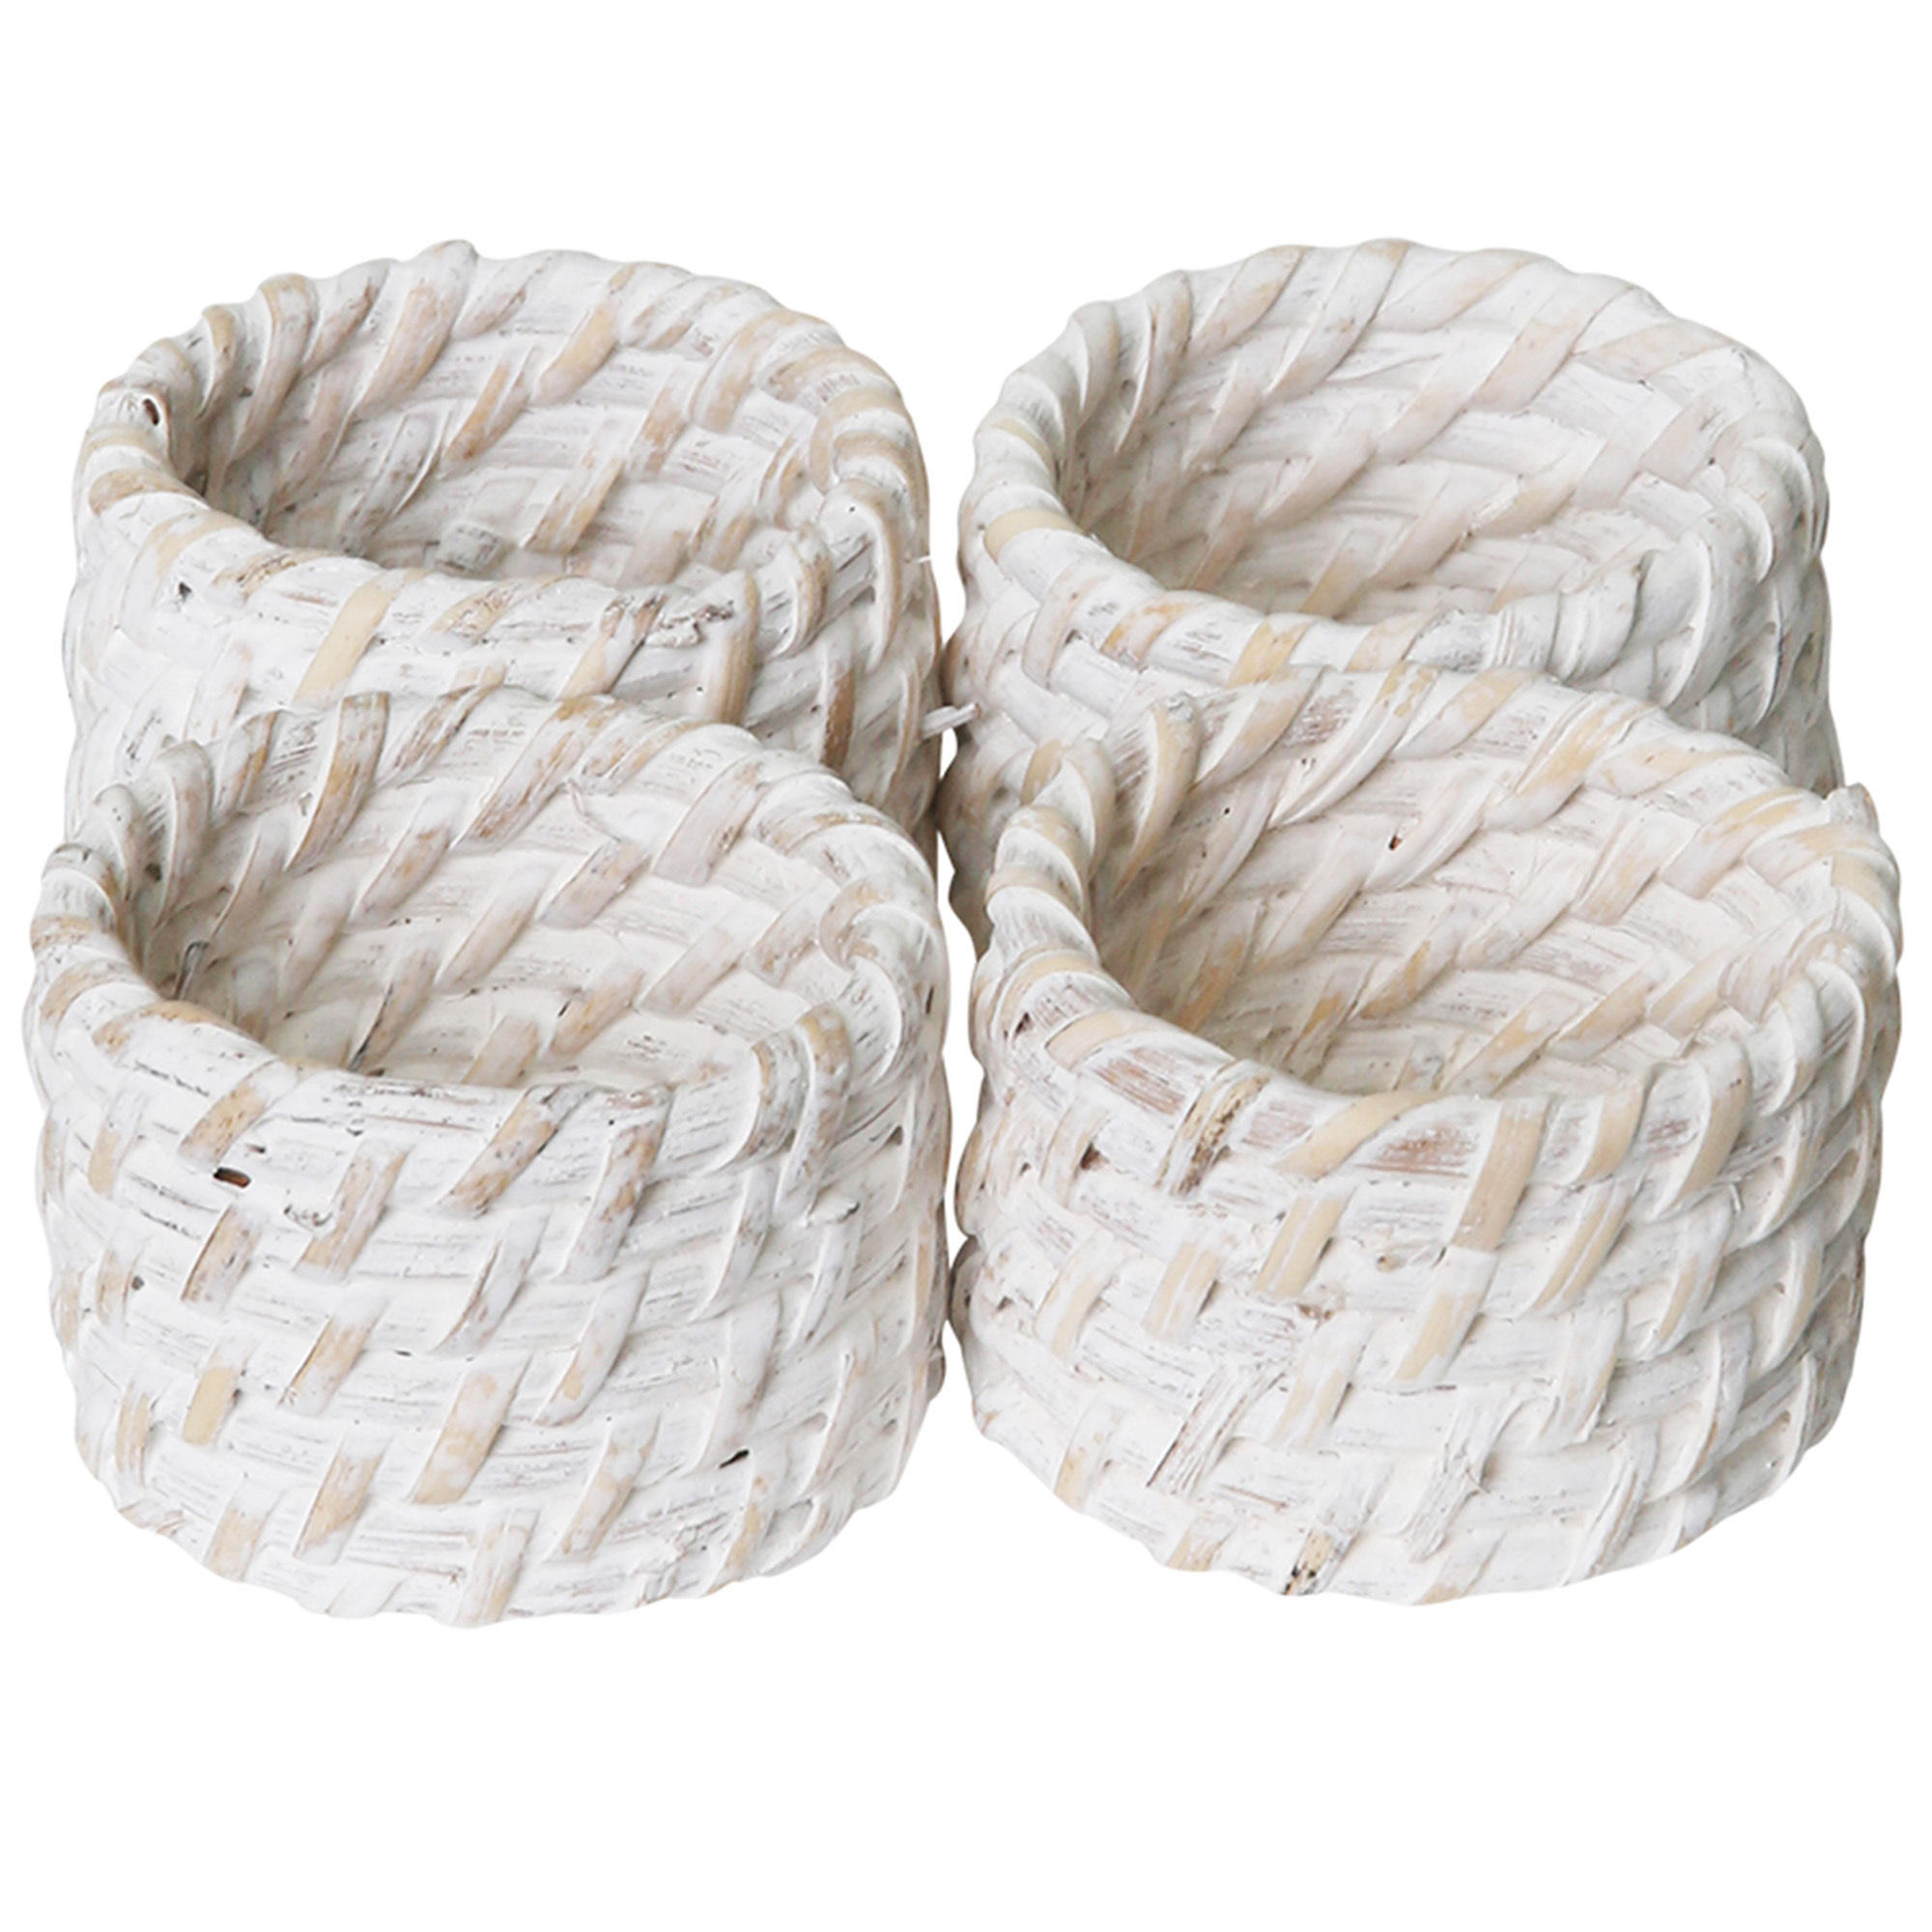 Rattan napkin rings for table decoration cheap price OEM custom logo accepted